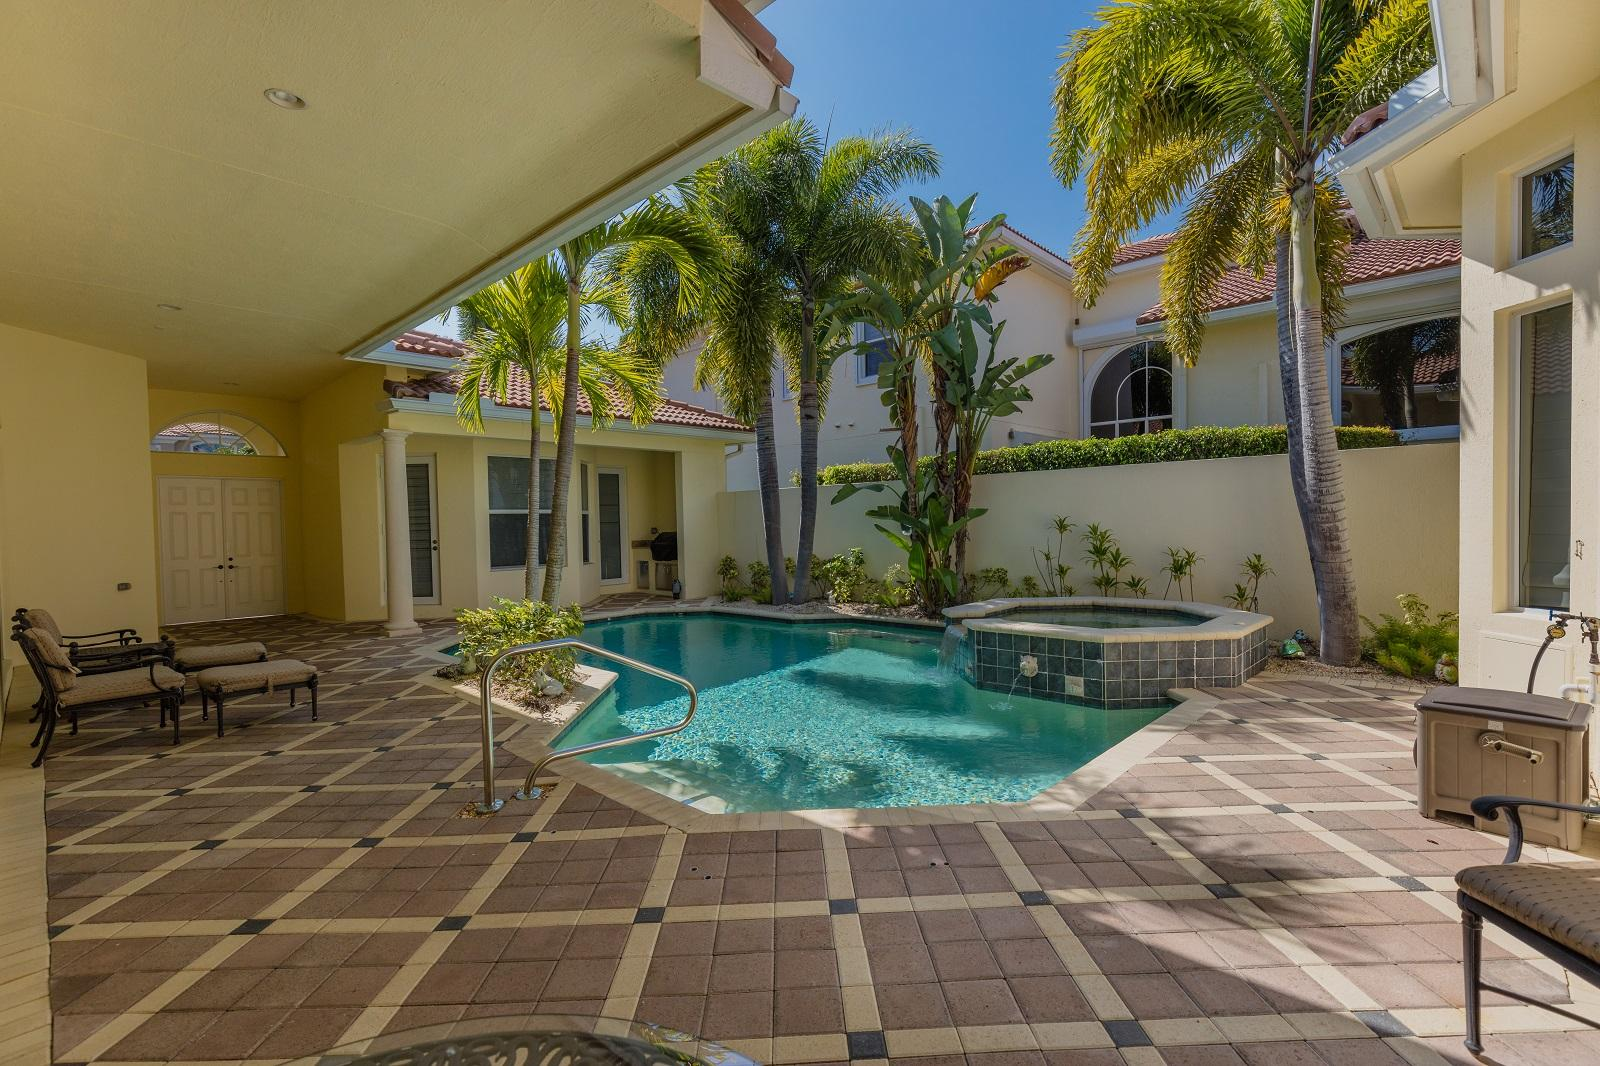 812 Floret Drive, Palm Beach Gardens, Florida 33410, 4 Bedrooms Bedrooms, ,3.1 BathroomsBathrooms,F,Single family,Floret,RX-10615831